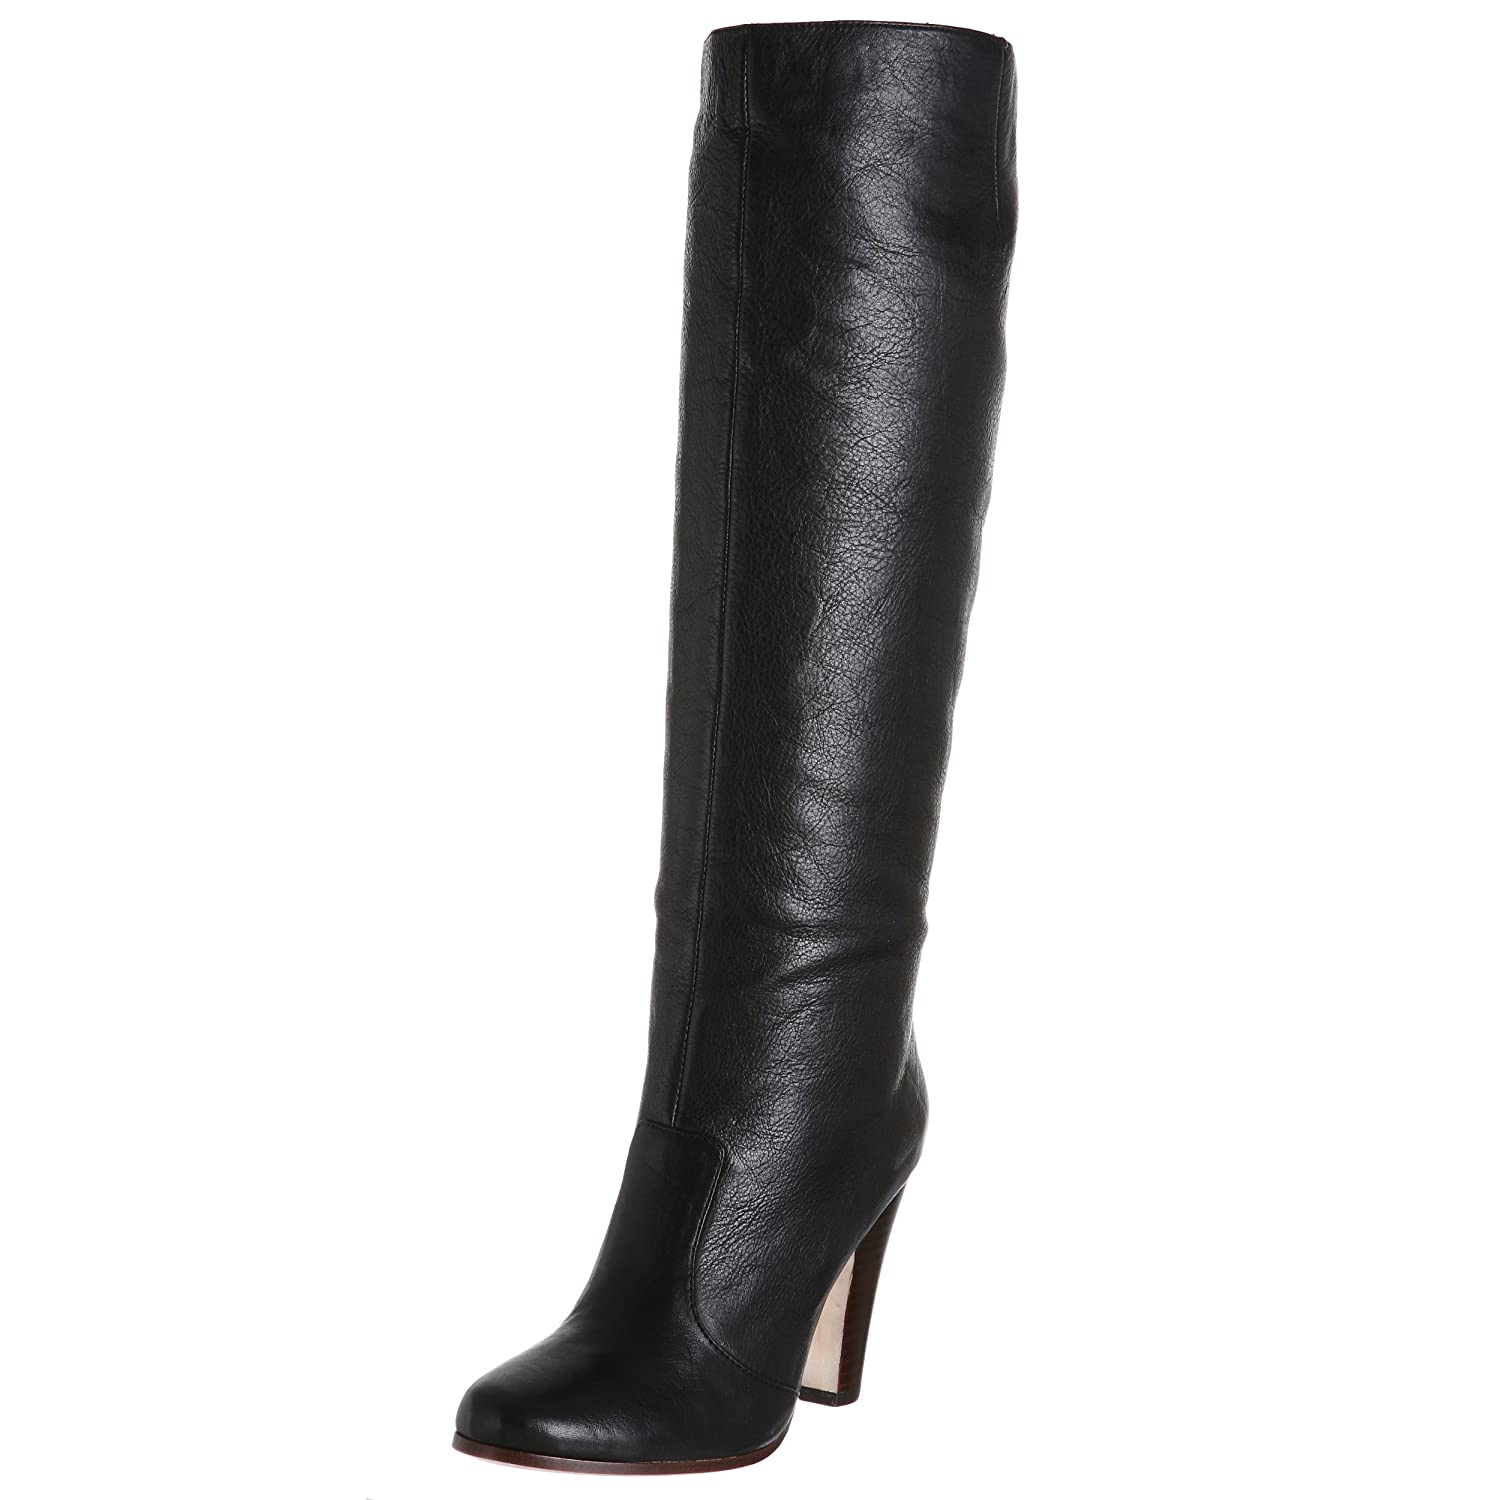 Endless.com: Dolce Vita Women's Wendy Boot: Knee-High - Free Overnight Shipping & Return Shipping from endless.com